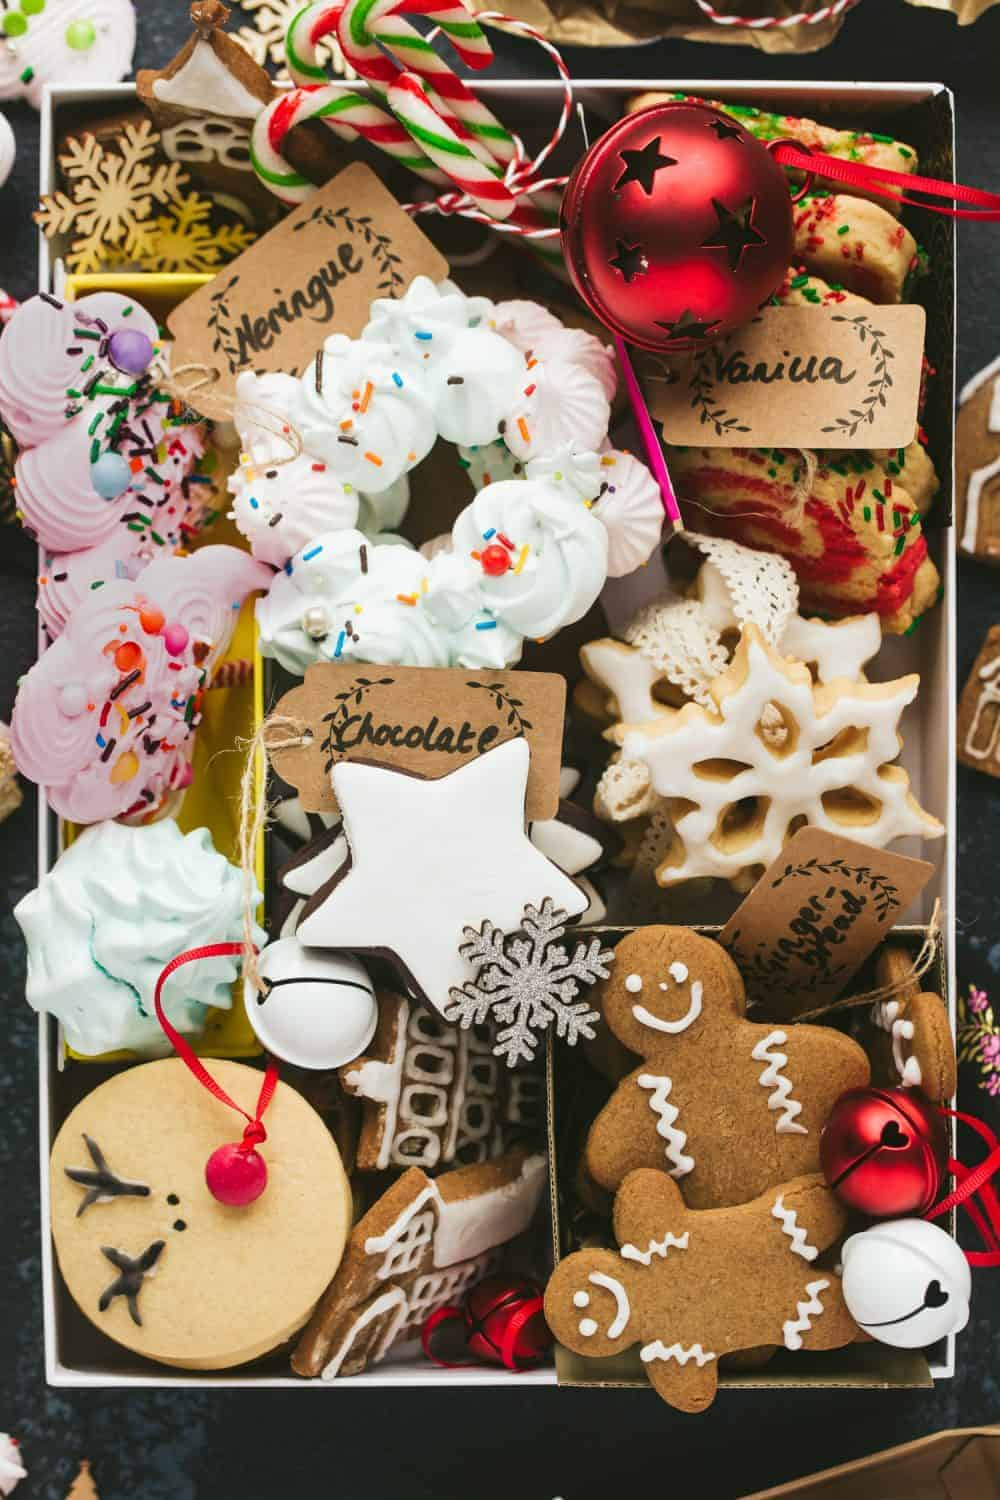 A gift box filled with homemade Christmas cookies and biscuits.